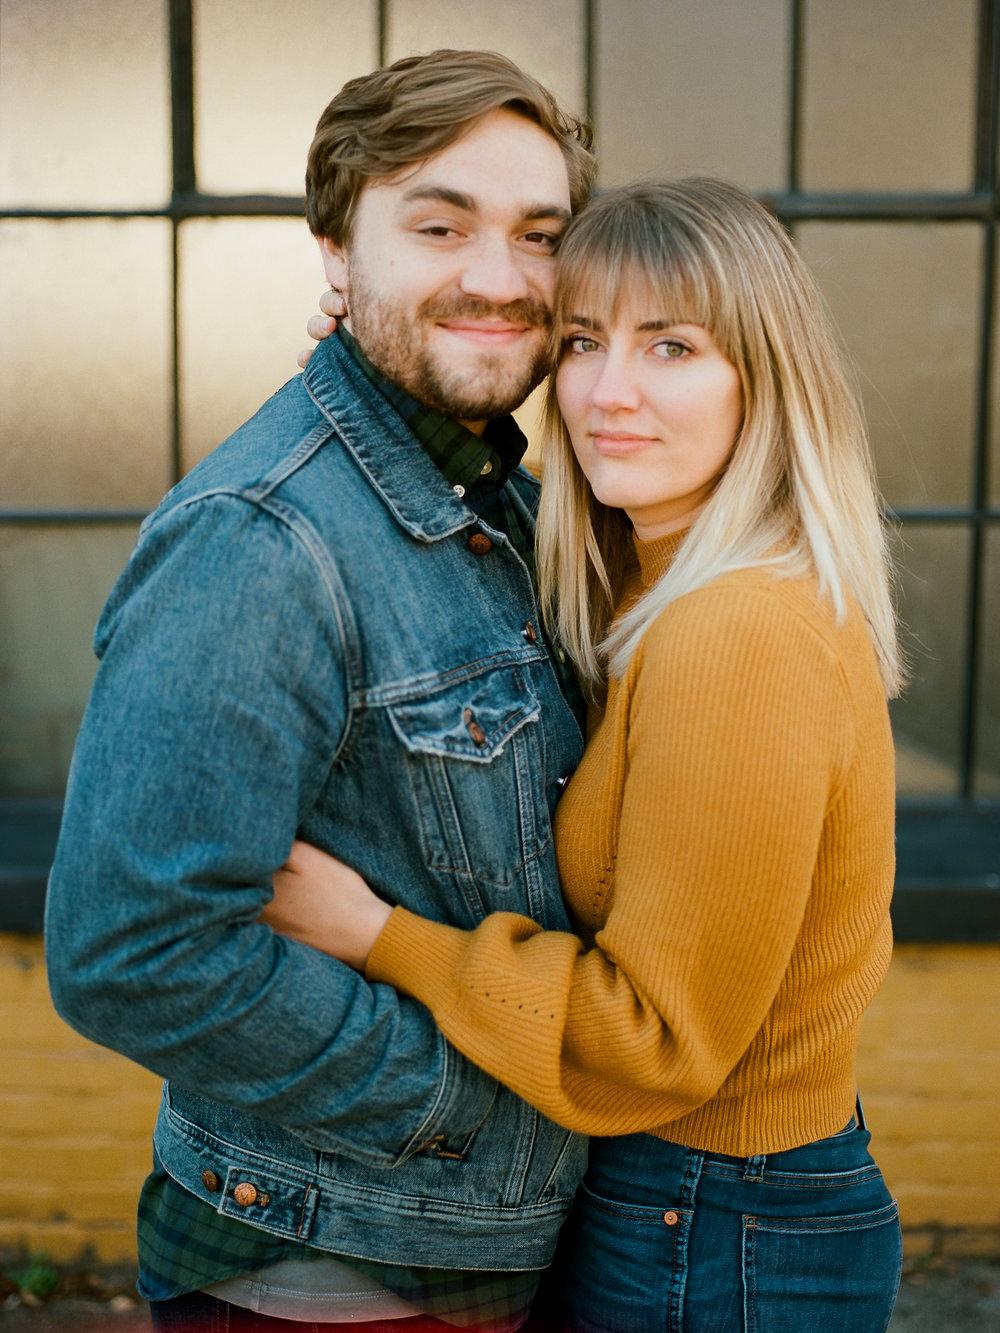 My better half and me, photographed by Bethany Sams